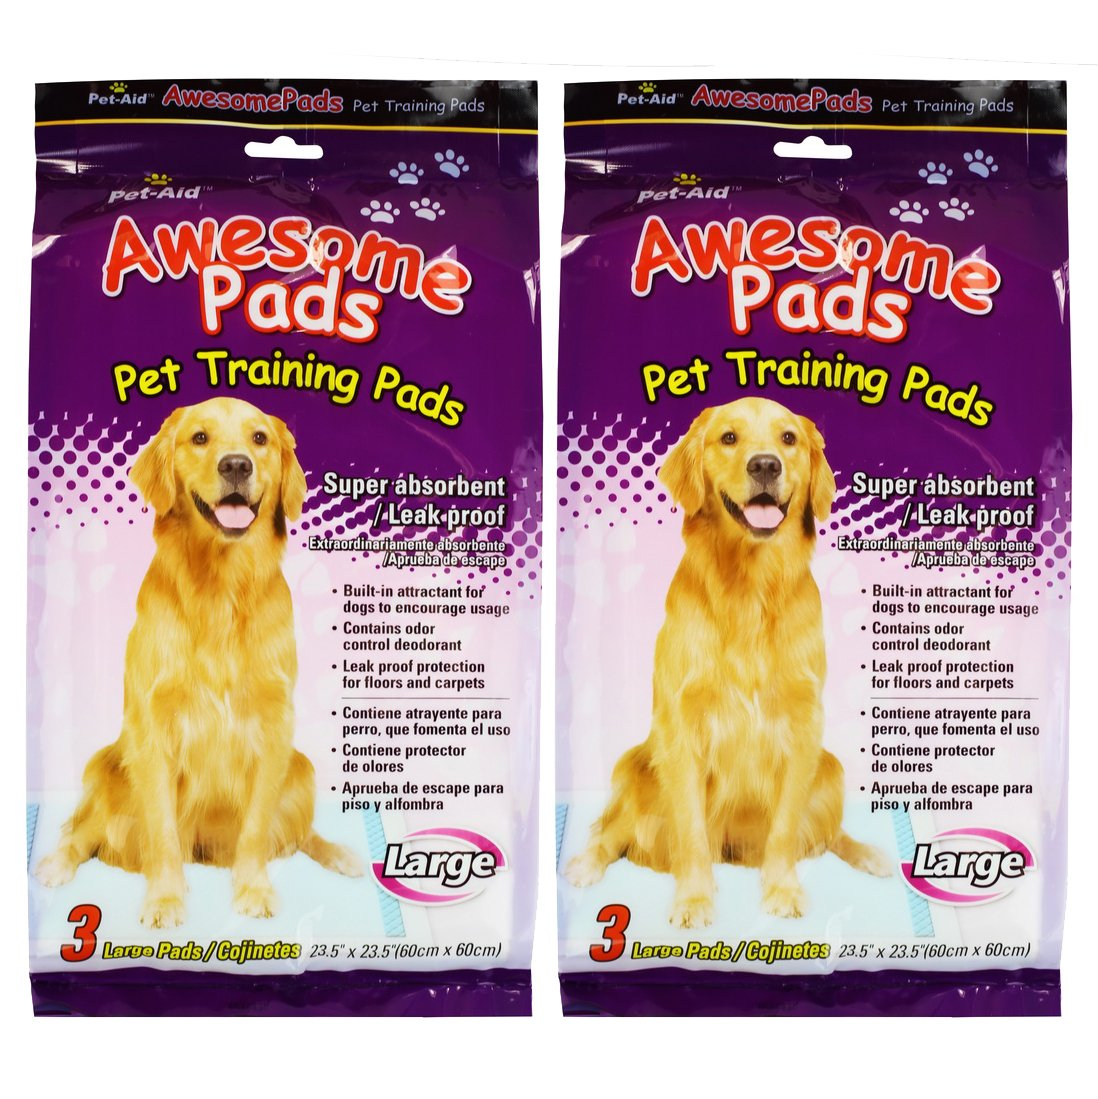 Amazon.com : Pet-Aid Awesome Pads - Puppy Dog Training Pads Large 3 Count, Super absorbent & leak proof : Puppy Pee Pad : Pet Supplies